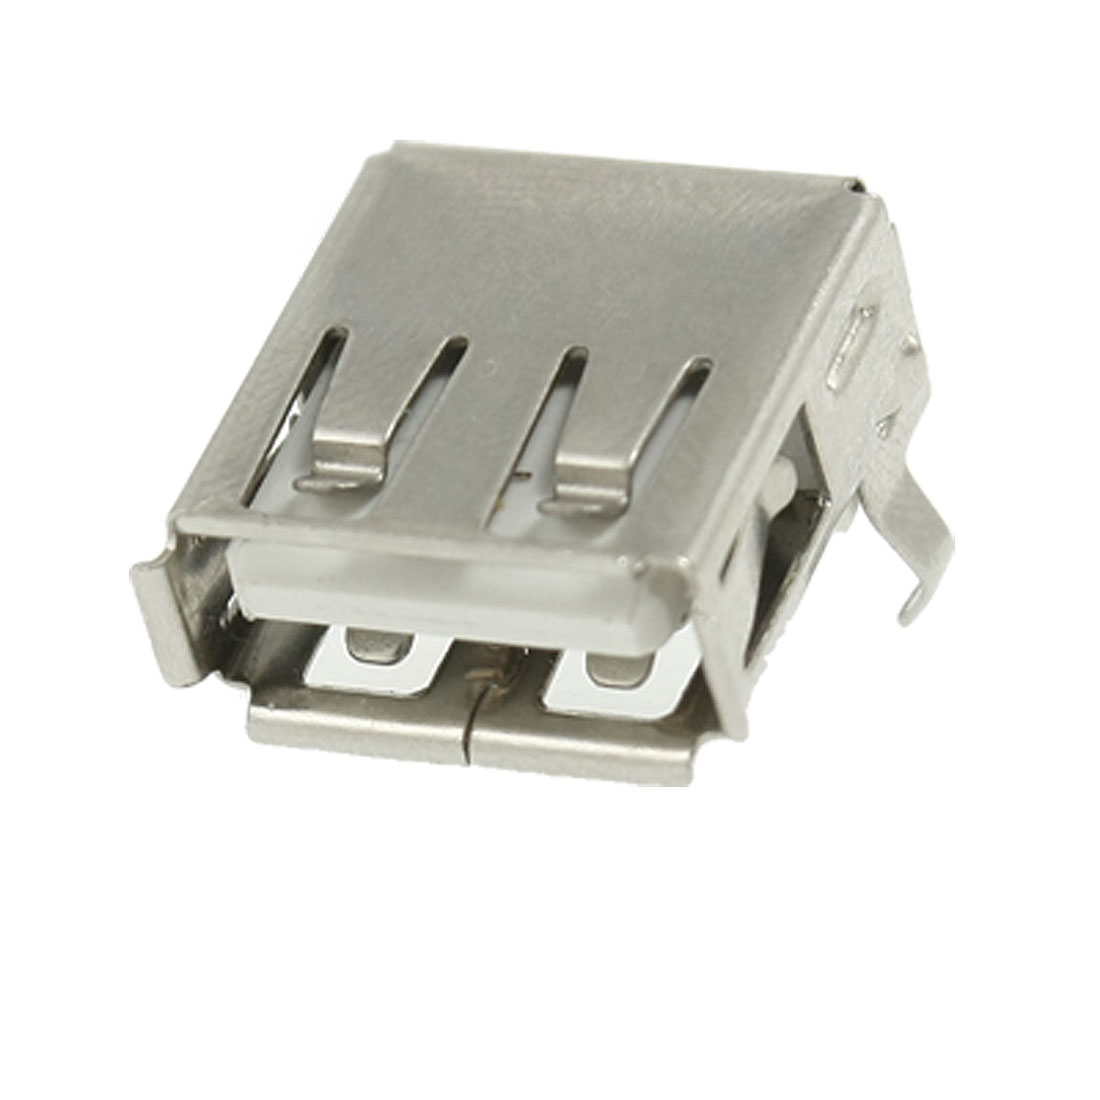 Replacement Computer USB Type A Right Angle Female Connector PCB Socket